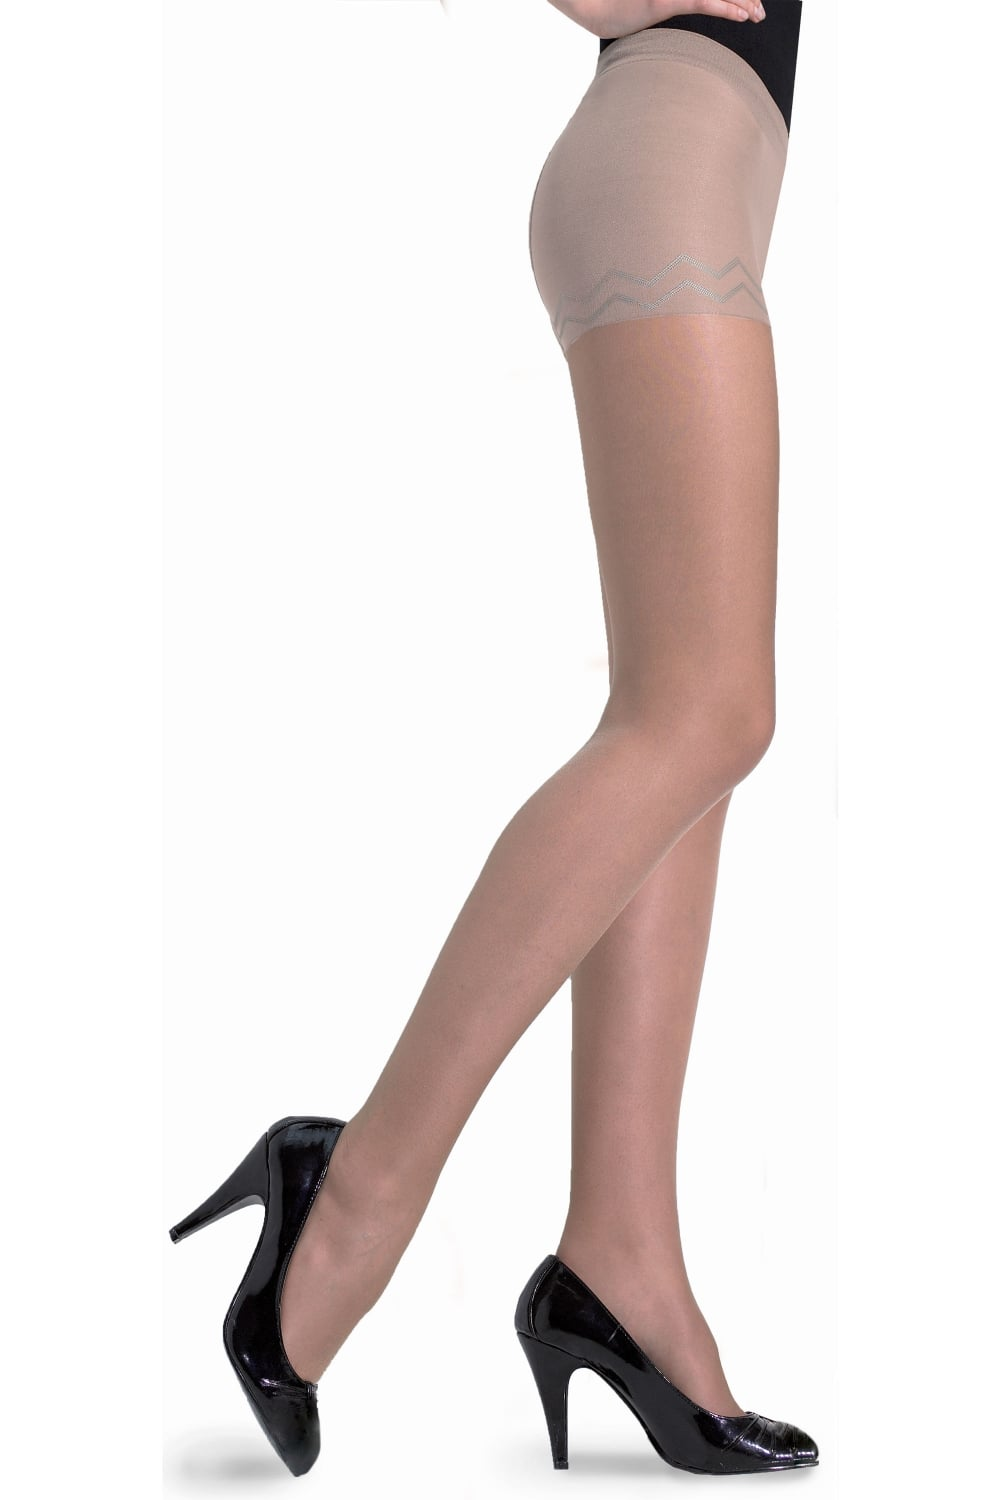 Andrea Bucci Sheer Silk 10 Denier Tights